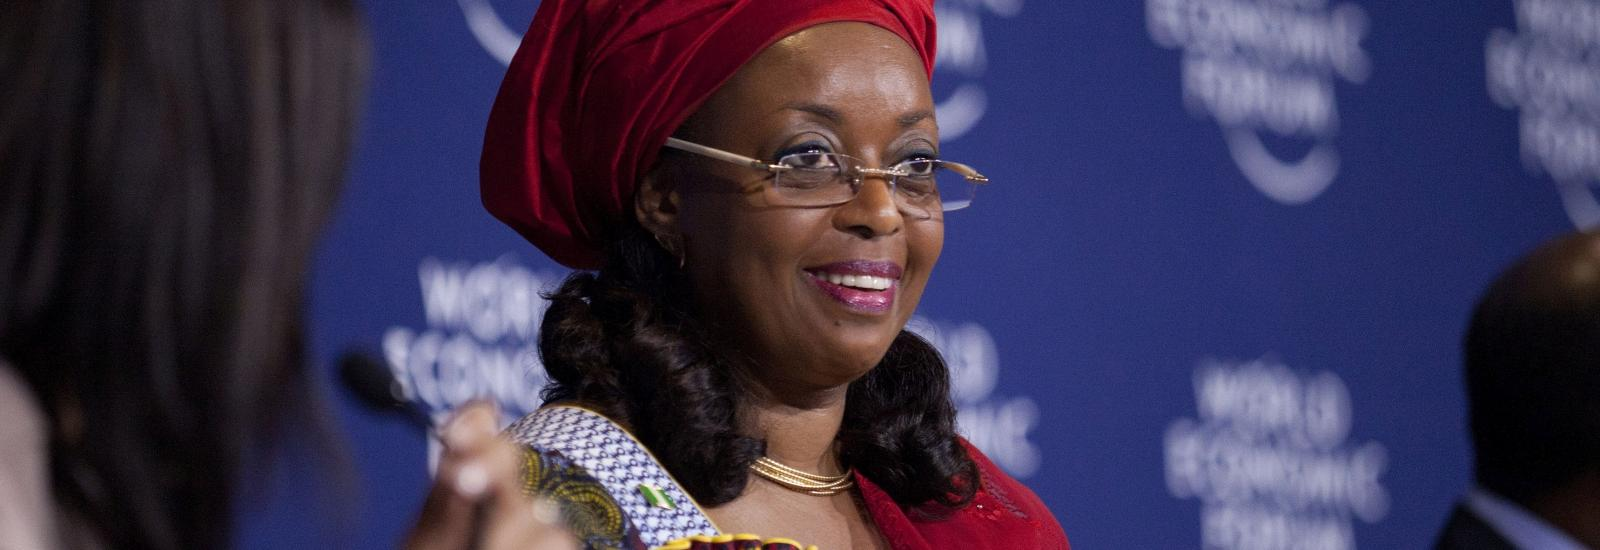 ©Flickr Diezani K. Alison-Madueke - World Economic Forum on Africa 2012